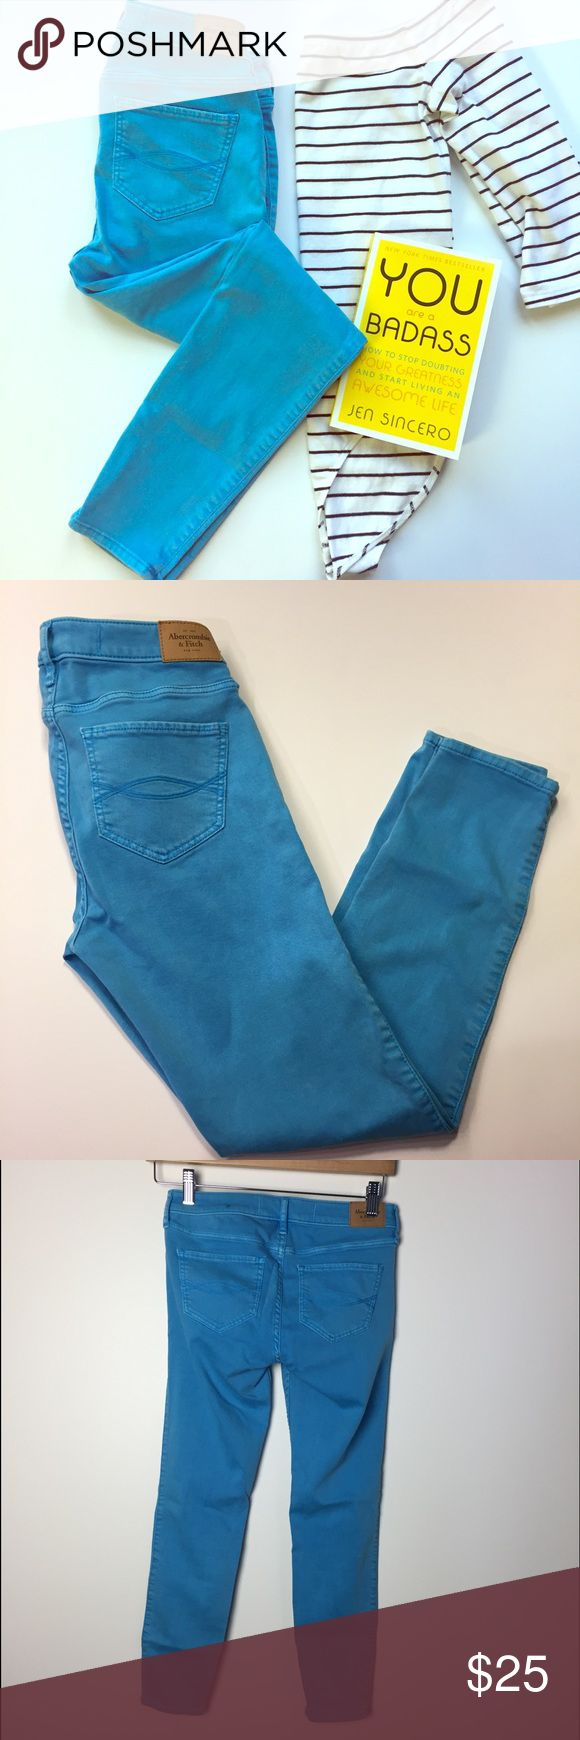 "A&F Cyan Blue Super Skinny Jeans - Ankle Length Lovely Abercrombie & Fitch colored super skinny jeans in cyan blue/turquoise. Ankle length. EUC. Super soft and stretchy. Waist 27"", inseam 26"". Perfect for spring! Abercrombie & Fitch Jeans Skinny"